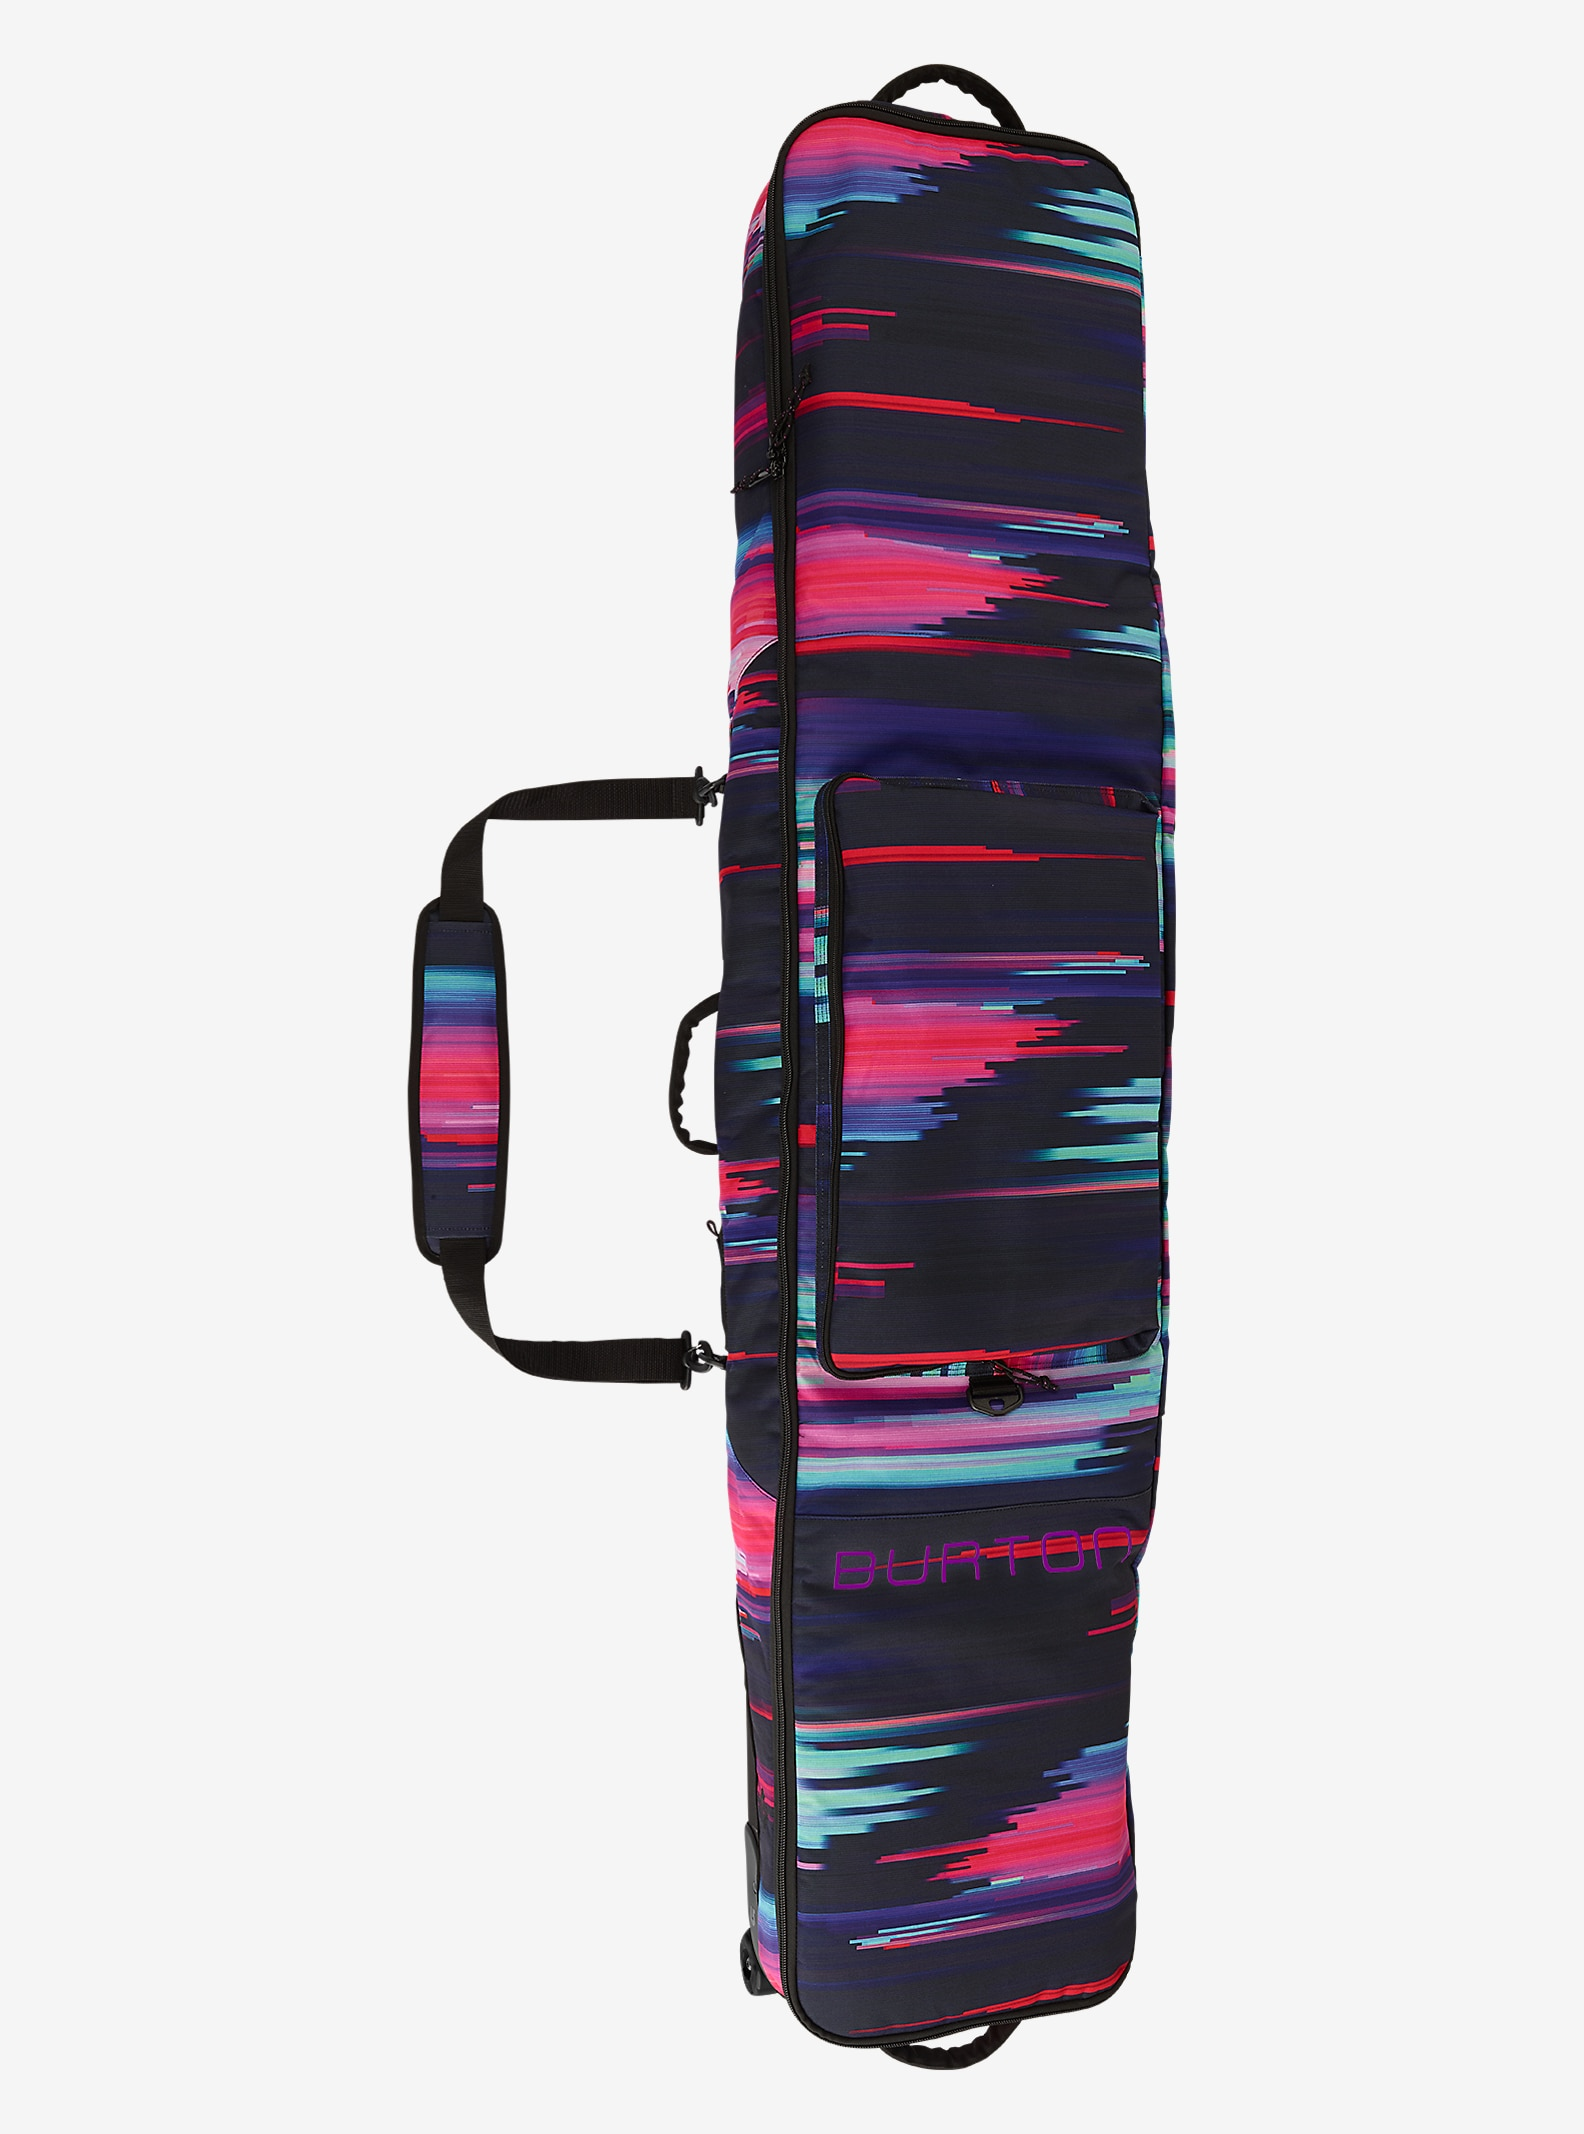 Burton Wheelie Gig Bag shown in Glitch Print